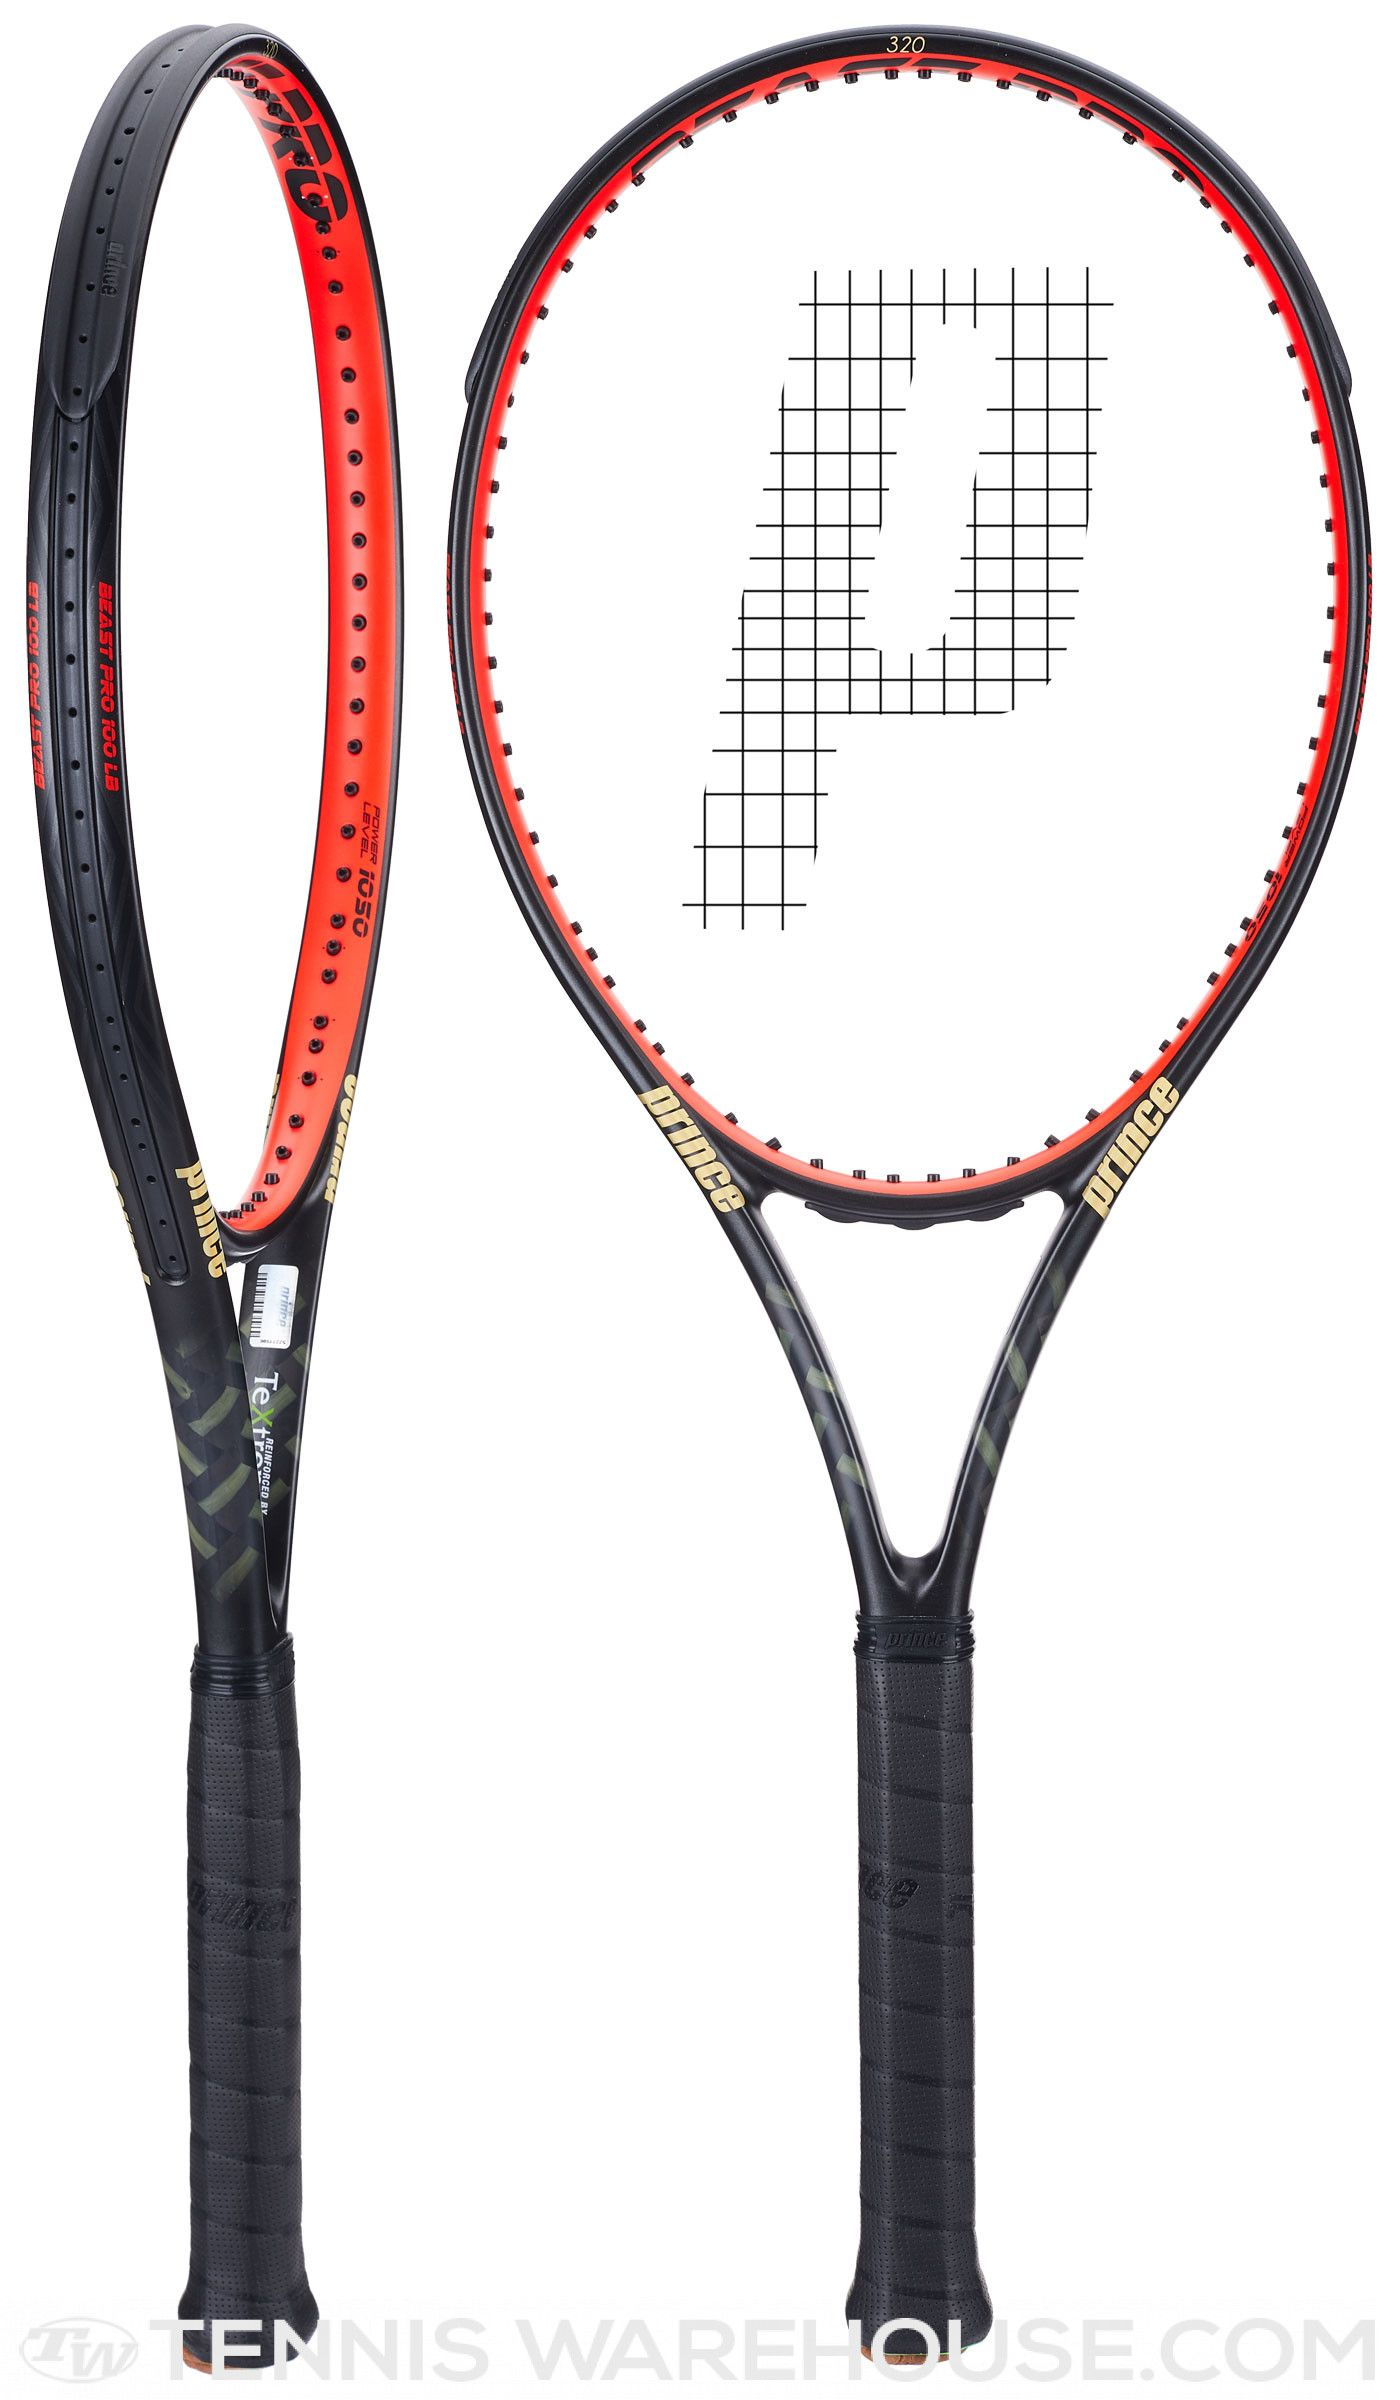 Check Out The Racquet Endorsed By John Isner Prince Textreme Beast Pro 100 Lb Racquet Racquets Tennis Equipment Tennis Racquet